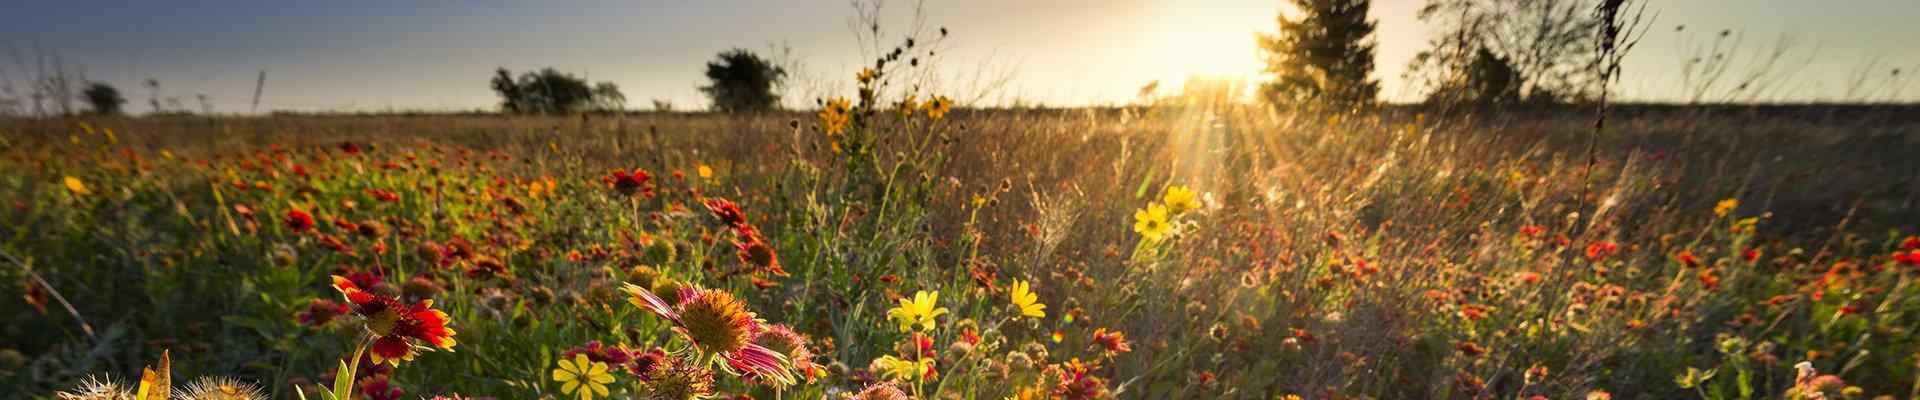 a field of flowers at sunset in haslet texas